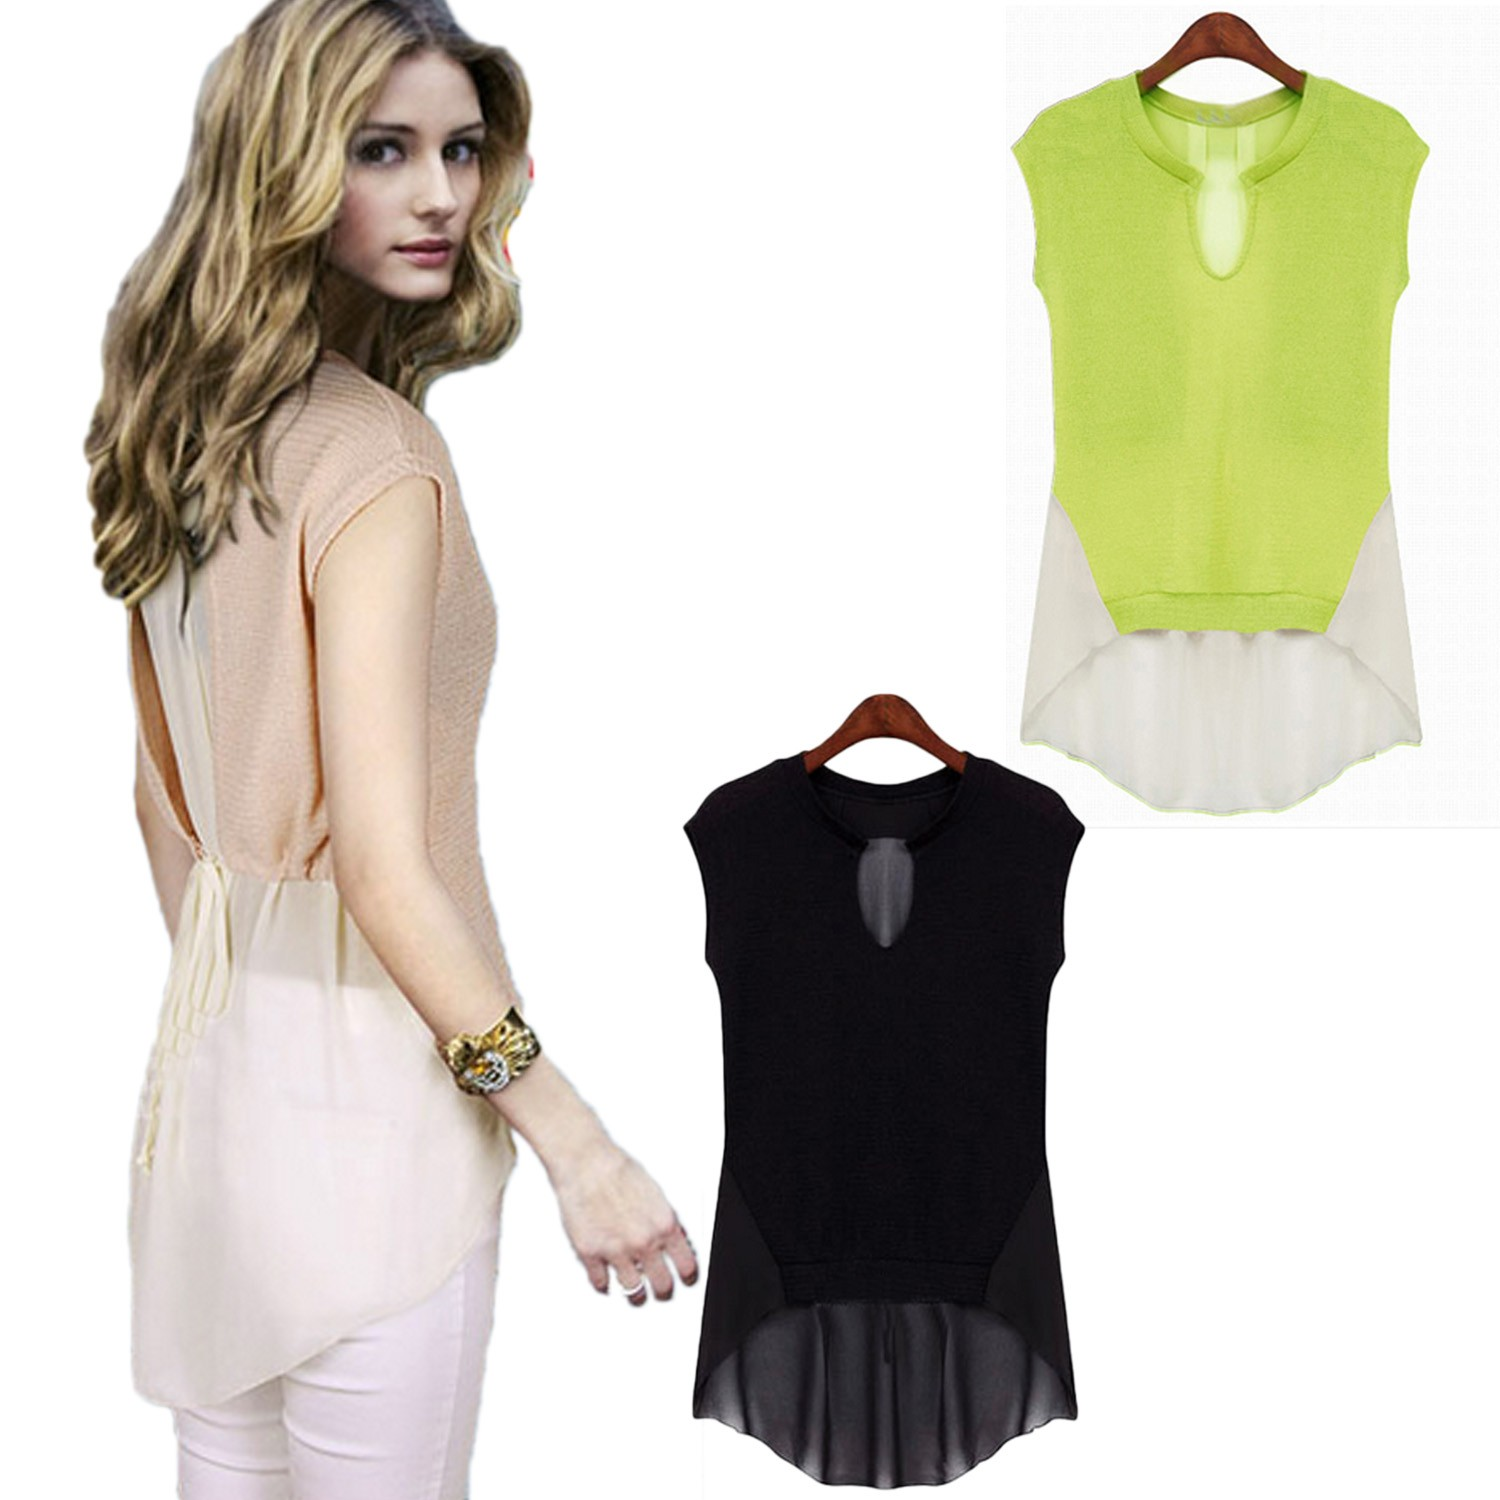 Chiffon Sleeveless Sheer Sleeveless Top Blouse - 6994#